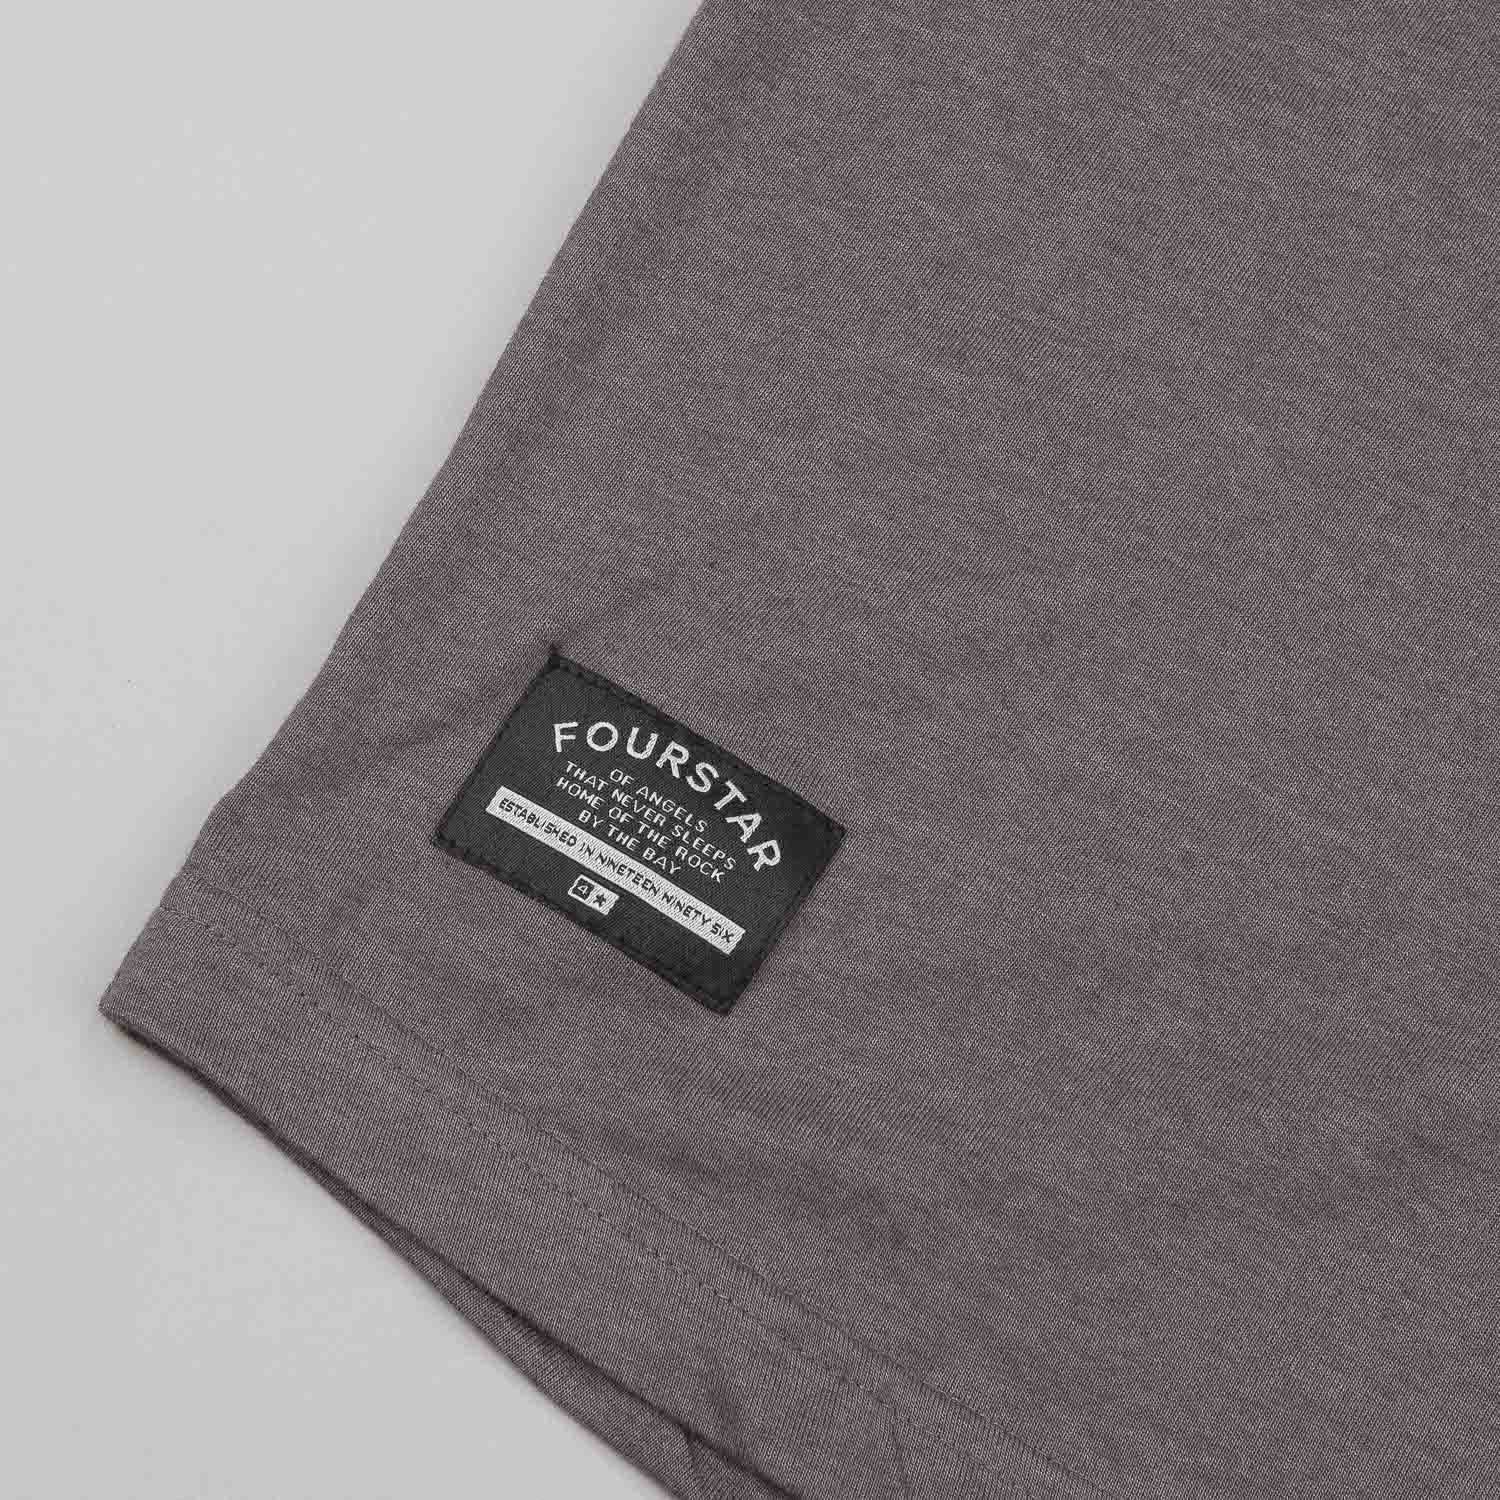 Fourstar Leavenworth 3/4 Sleeve Pocket T-Shirt - Grey / Navy